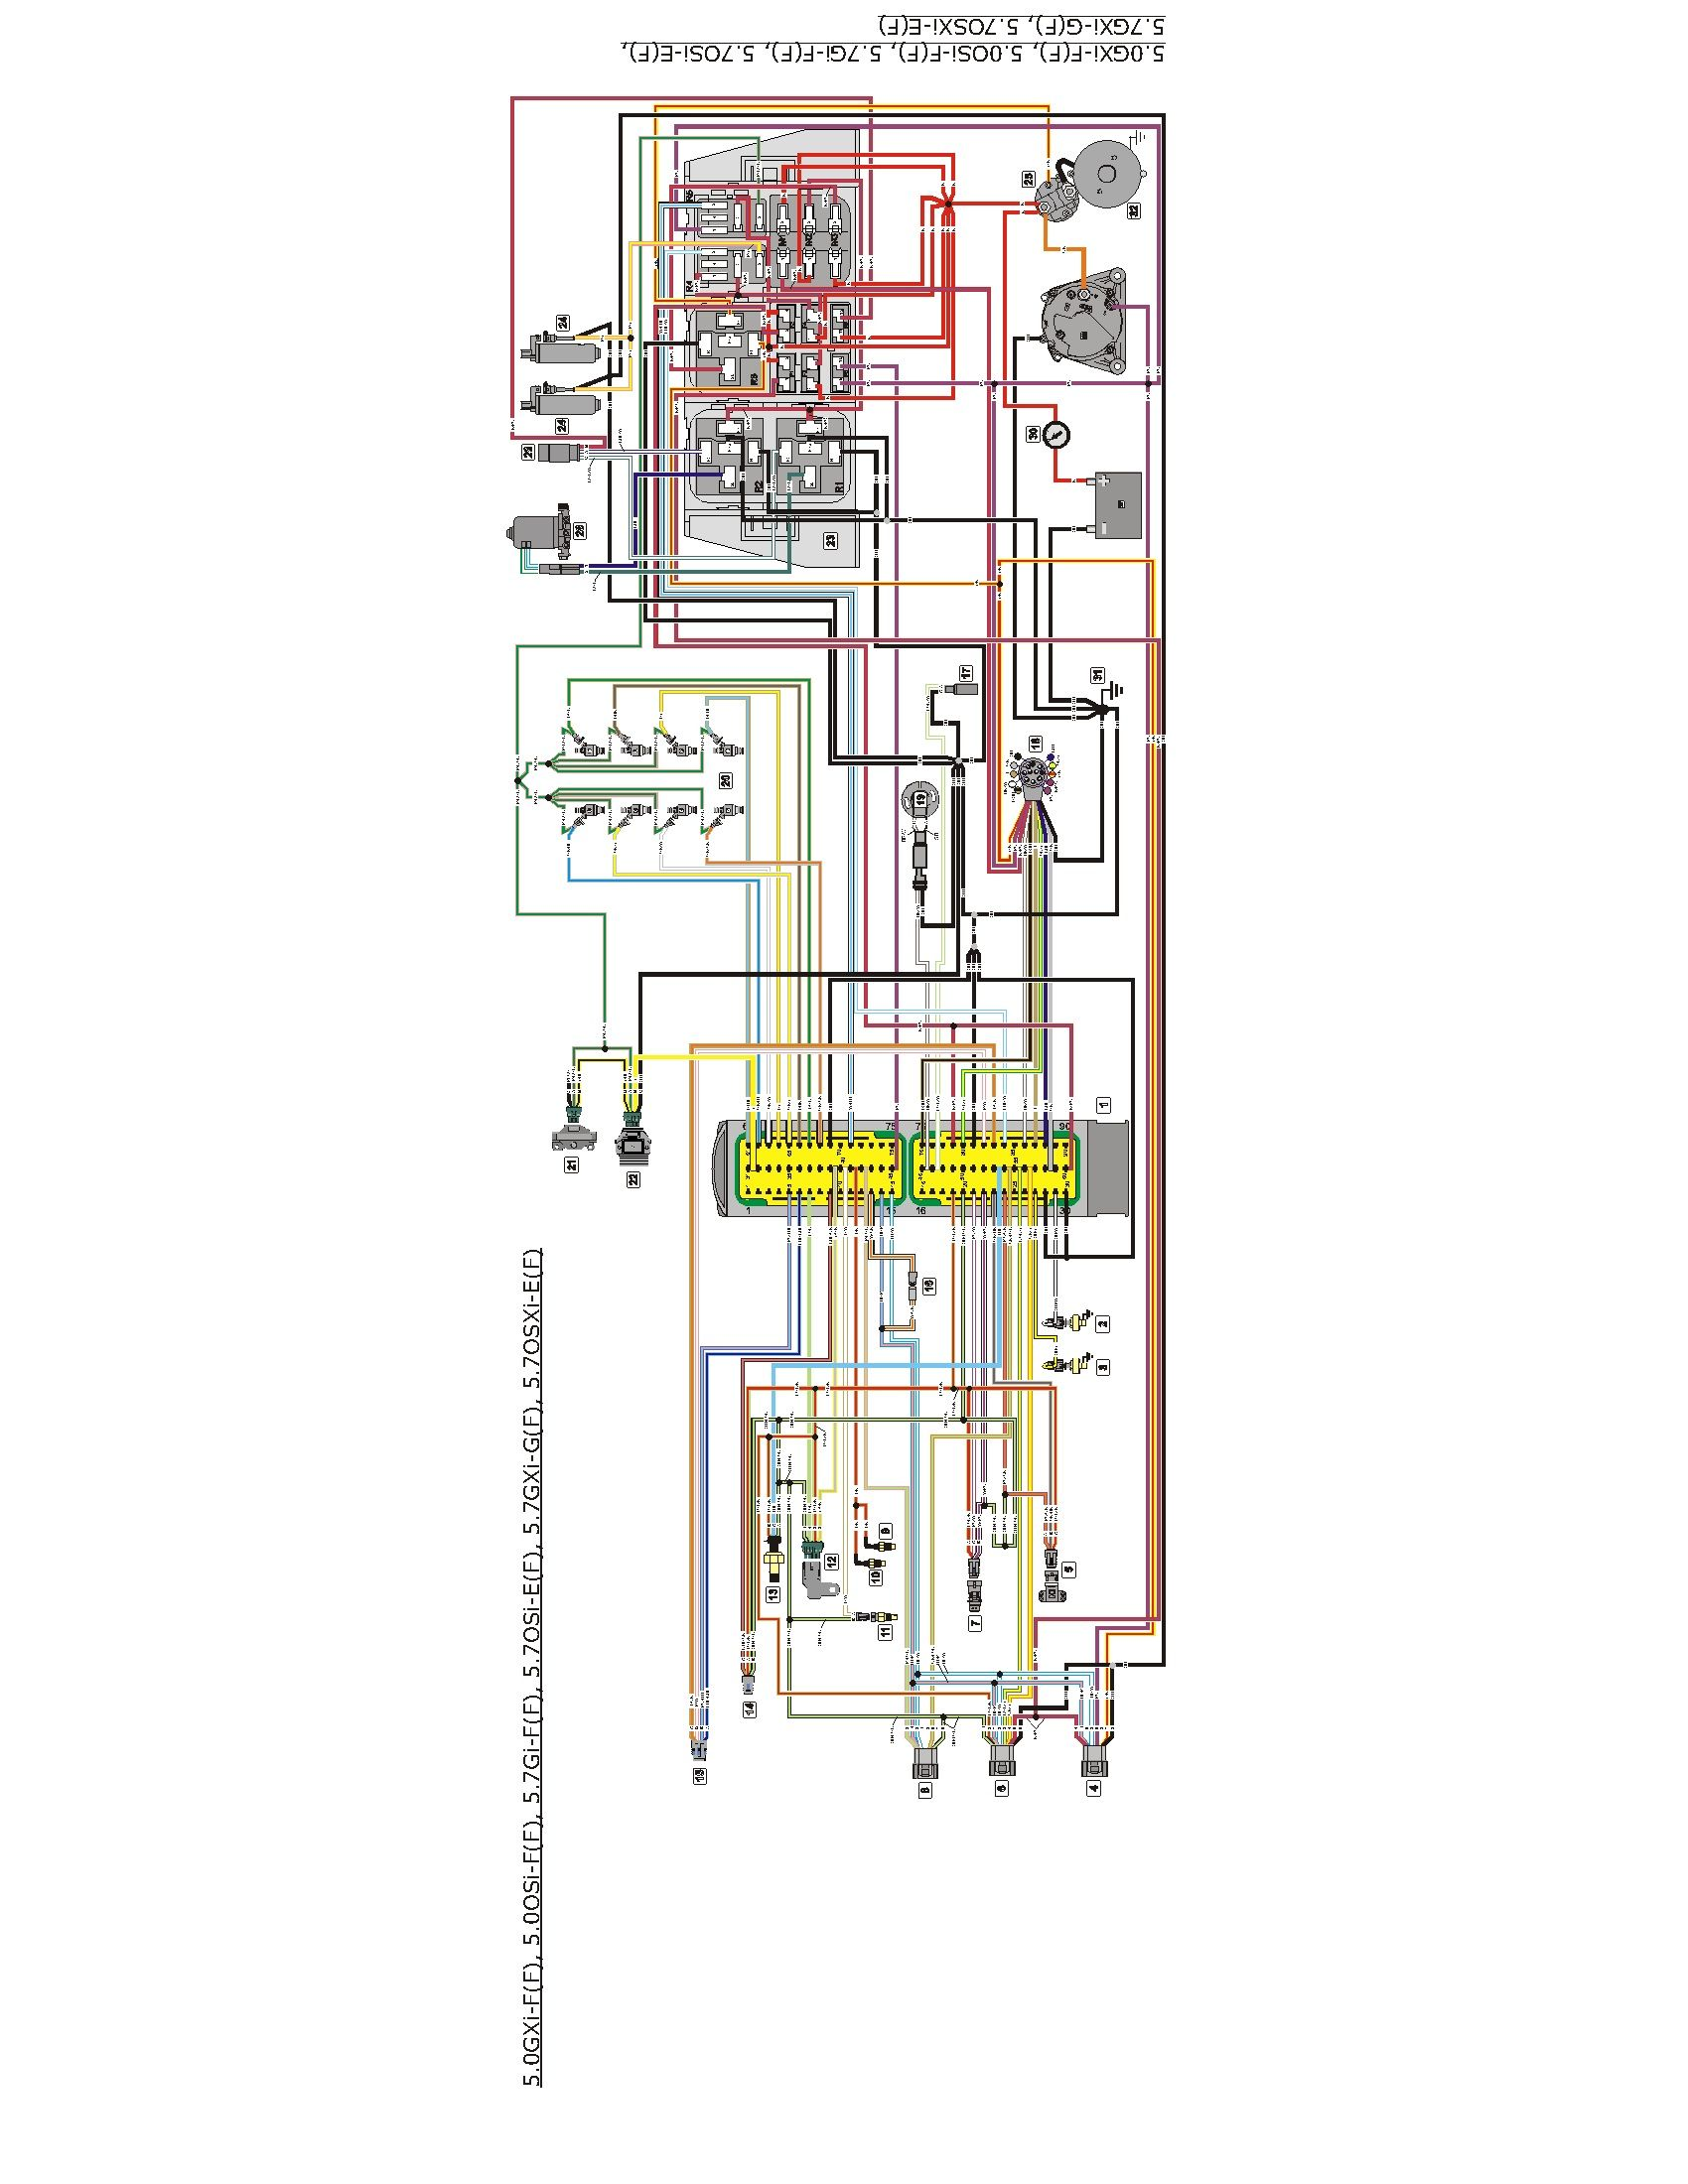 Volvo Penta 57 Engine Wiring Diagram Boat Pinterest Motoorcycle Engines